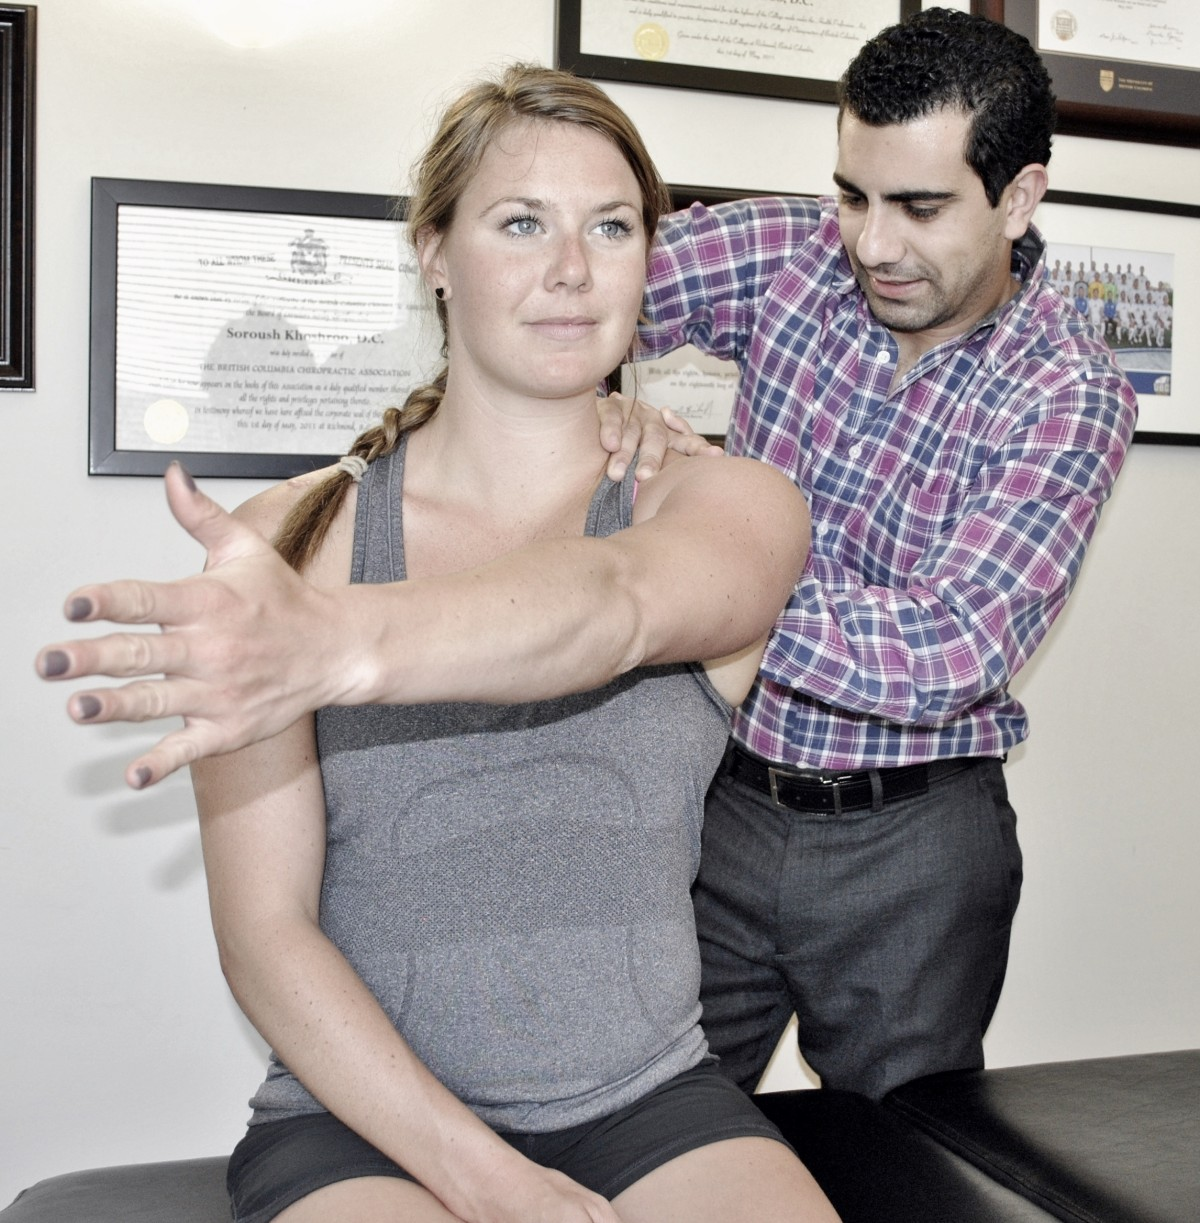 Rotator cuff injury of the shoulder –A.R.T. to supraspinatus muscle and tendon